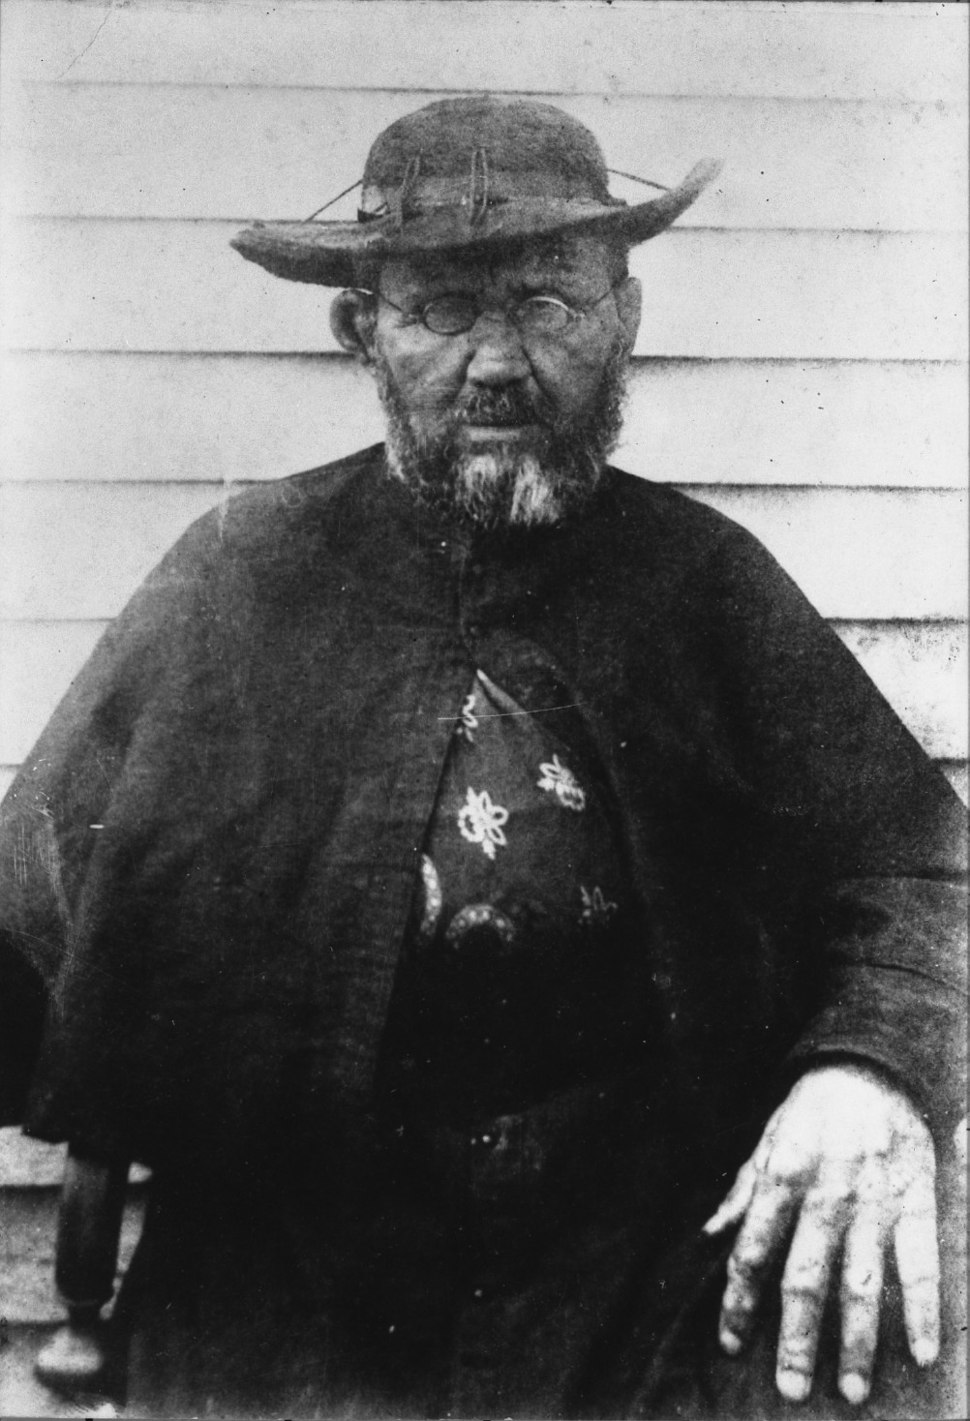 Father Damien, photograph by William Brigham